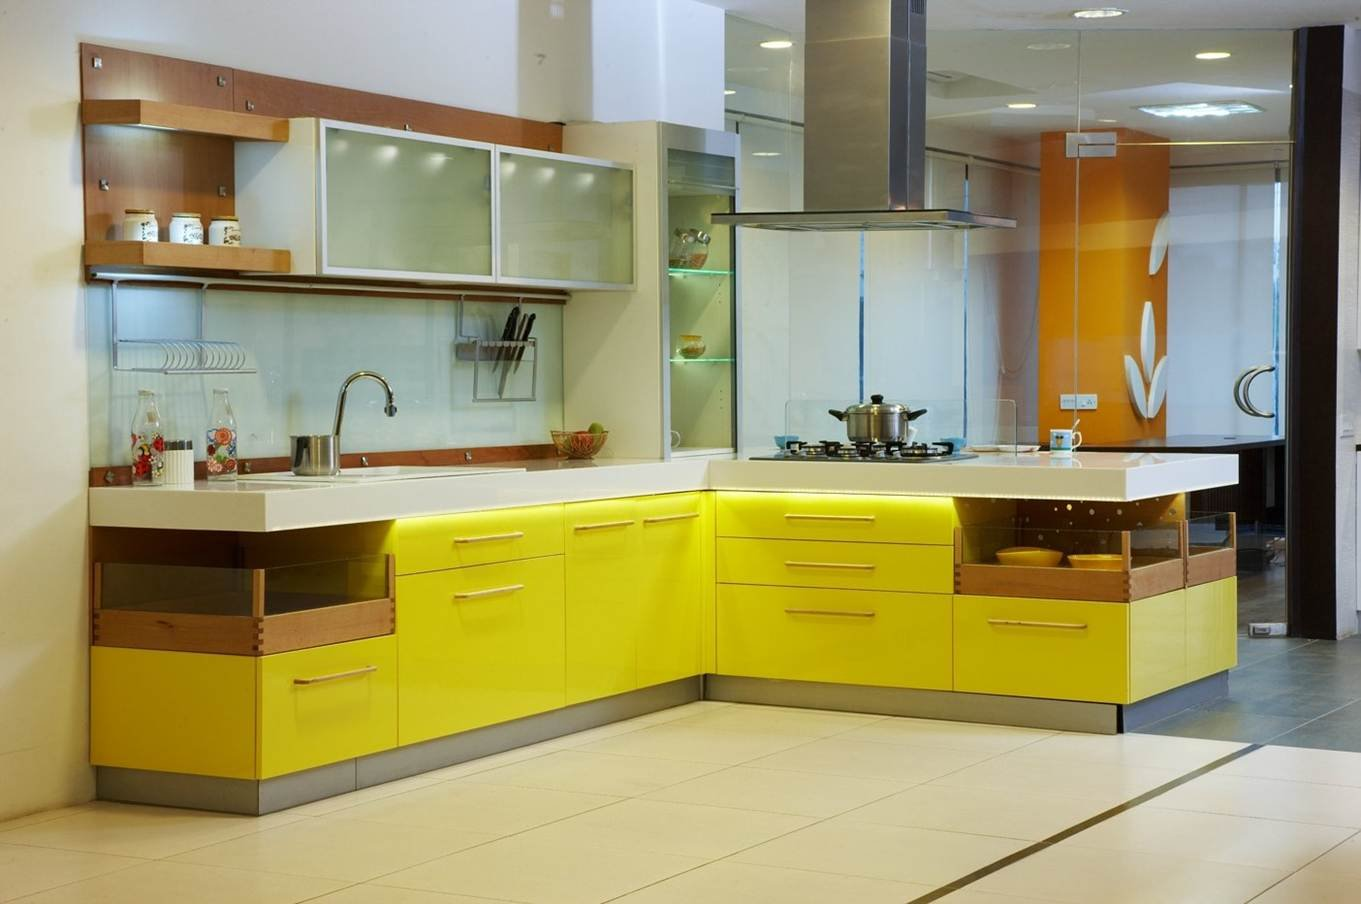 Design indian kitchen - Modular kitchen designs india ...